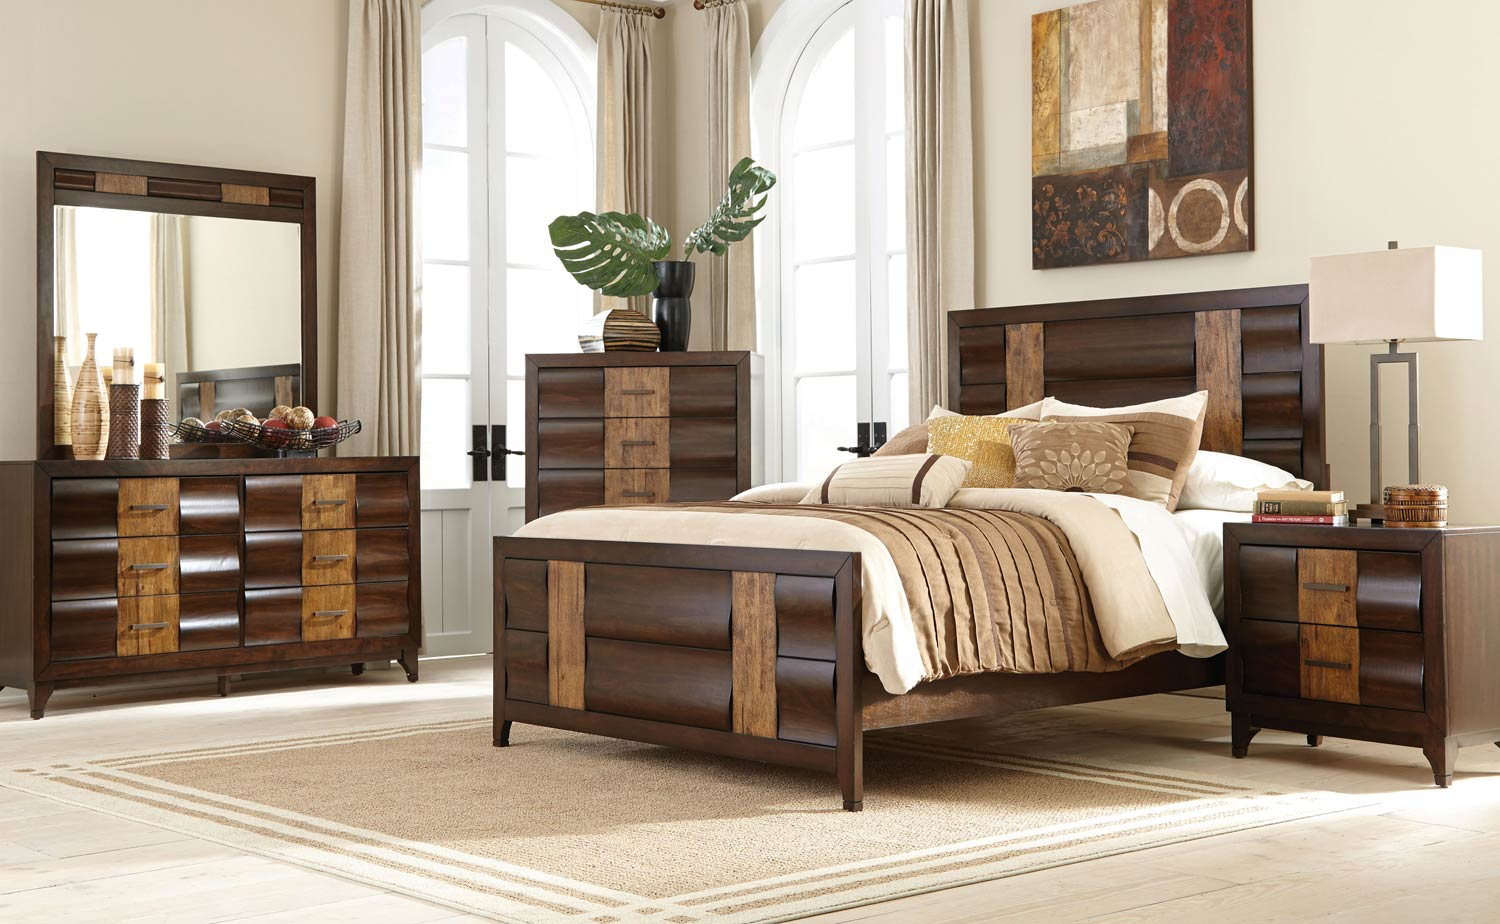 Coaster Dublin Bedroom Collection - Brown Oak/Dark Forest